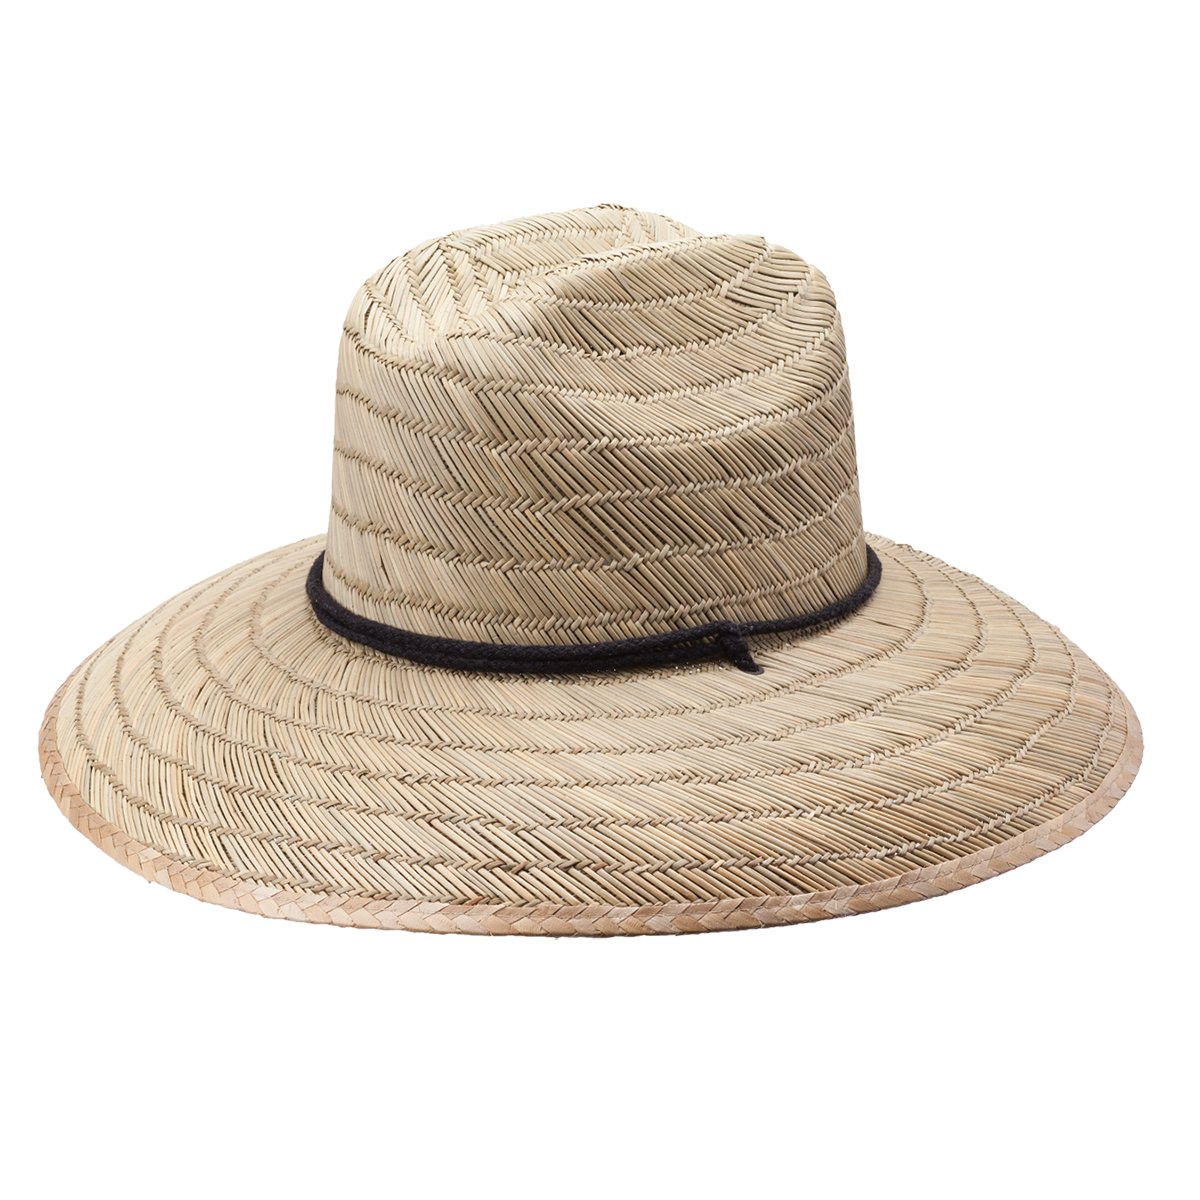 Peter Grimm Natural Straw Costa Lifeguard Hat - Wide Brim Sunhat Natural at  Amazon Men s Clothing store  5ad7b4dc10d